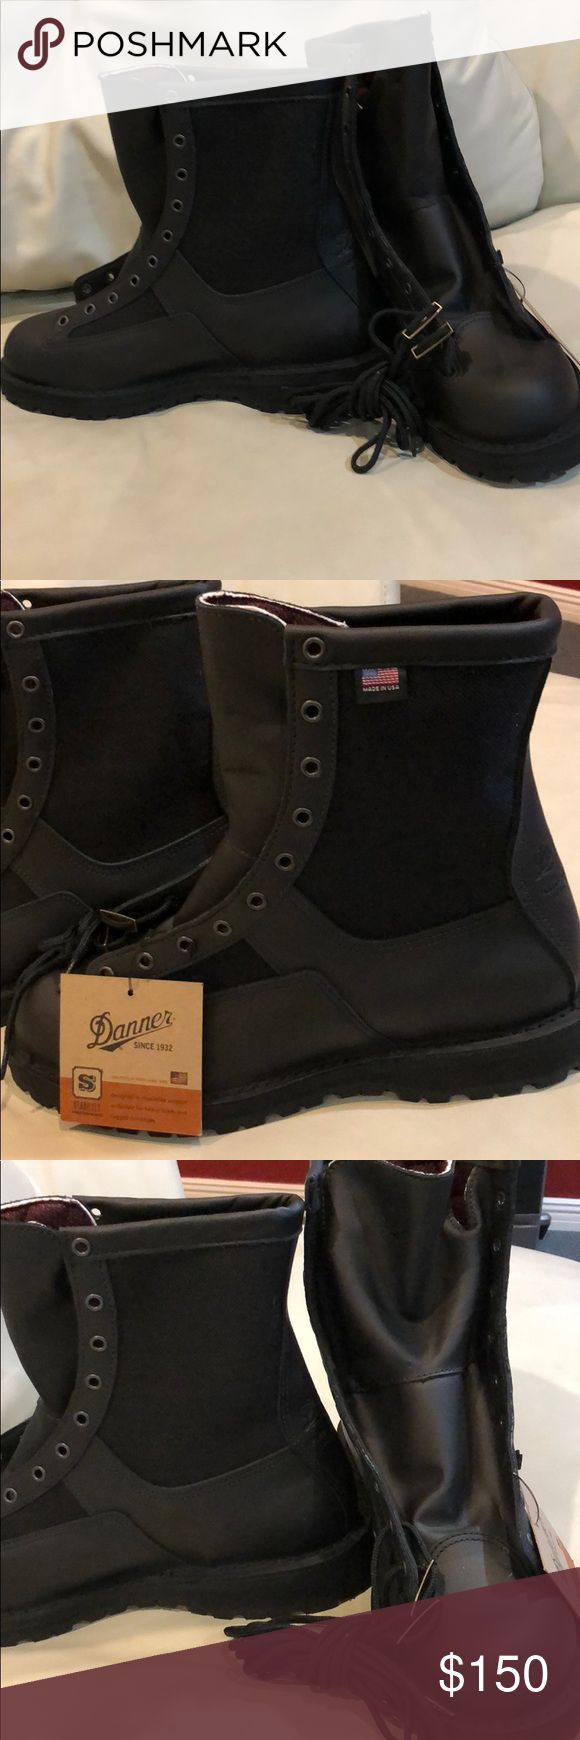 Danner Black lace up Gore-Tex Made in USA 11 Amazing boots. Ready to work. High end. 3m Thinsulate insulation. Vibram outsole. Waterproof. Recraftable. Made for law enforcement or other hard working men. Made in USA. Check out their website. They are listed for 350 msrp online Danner Shoes Boots